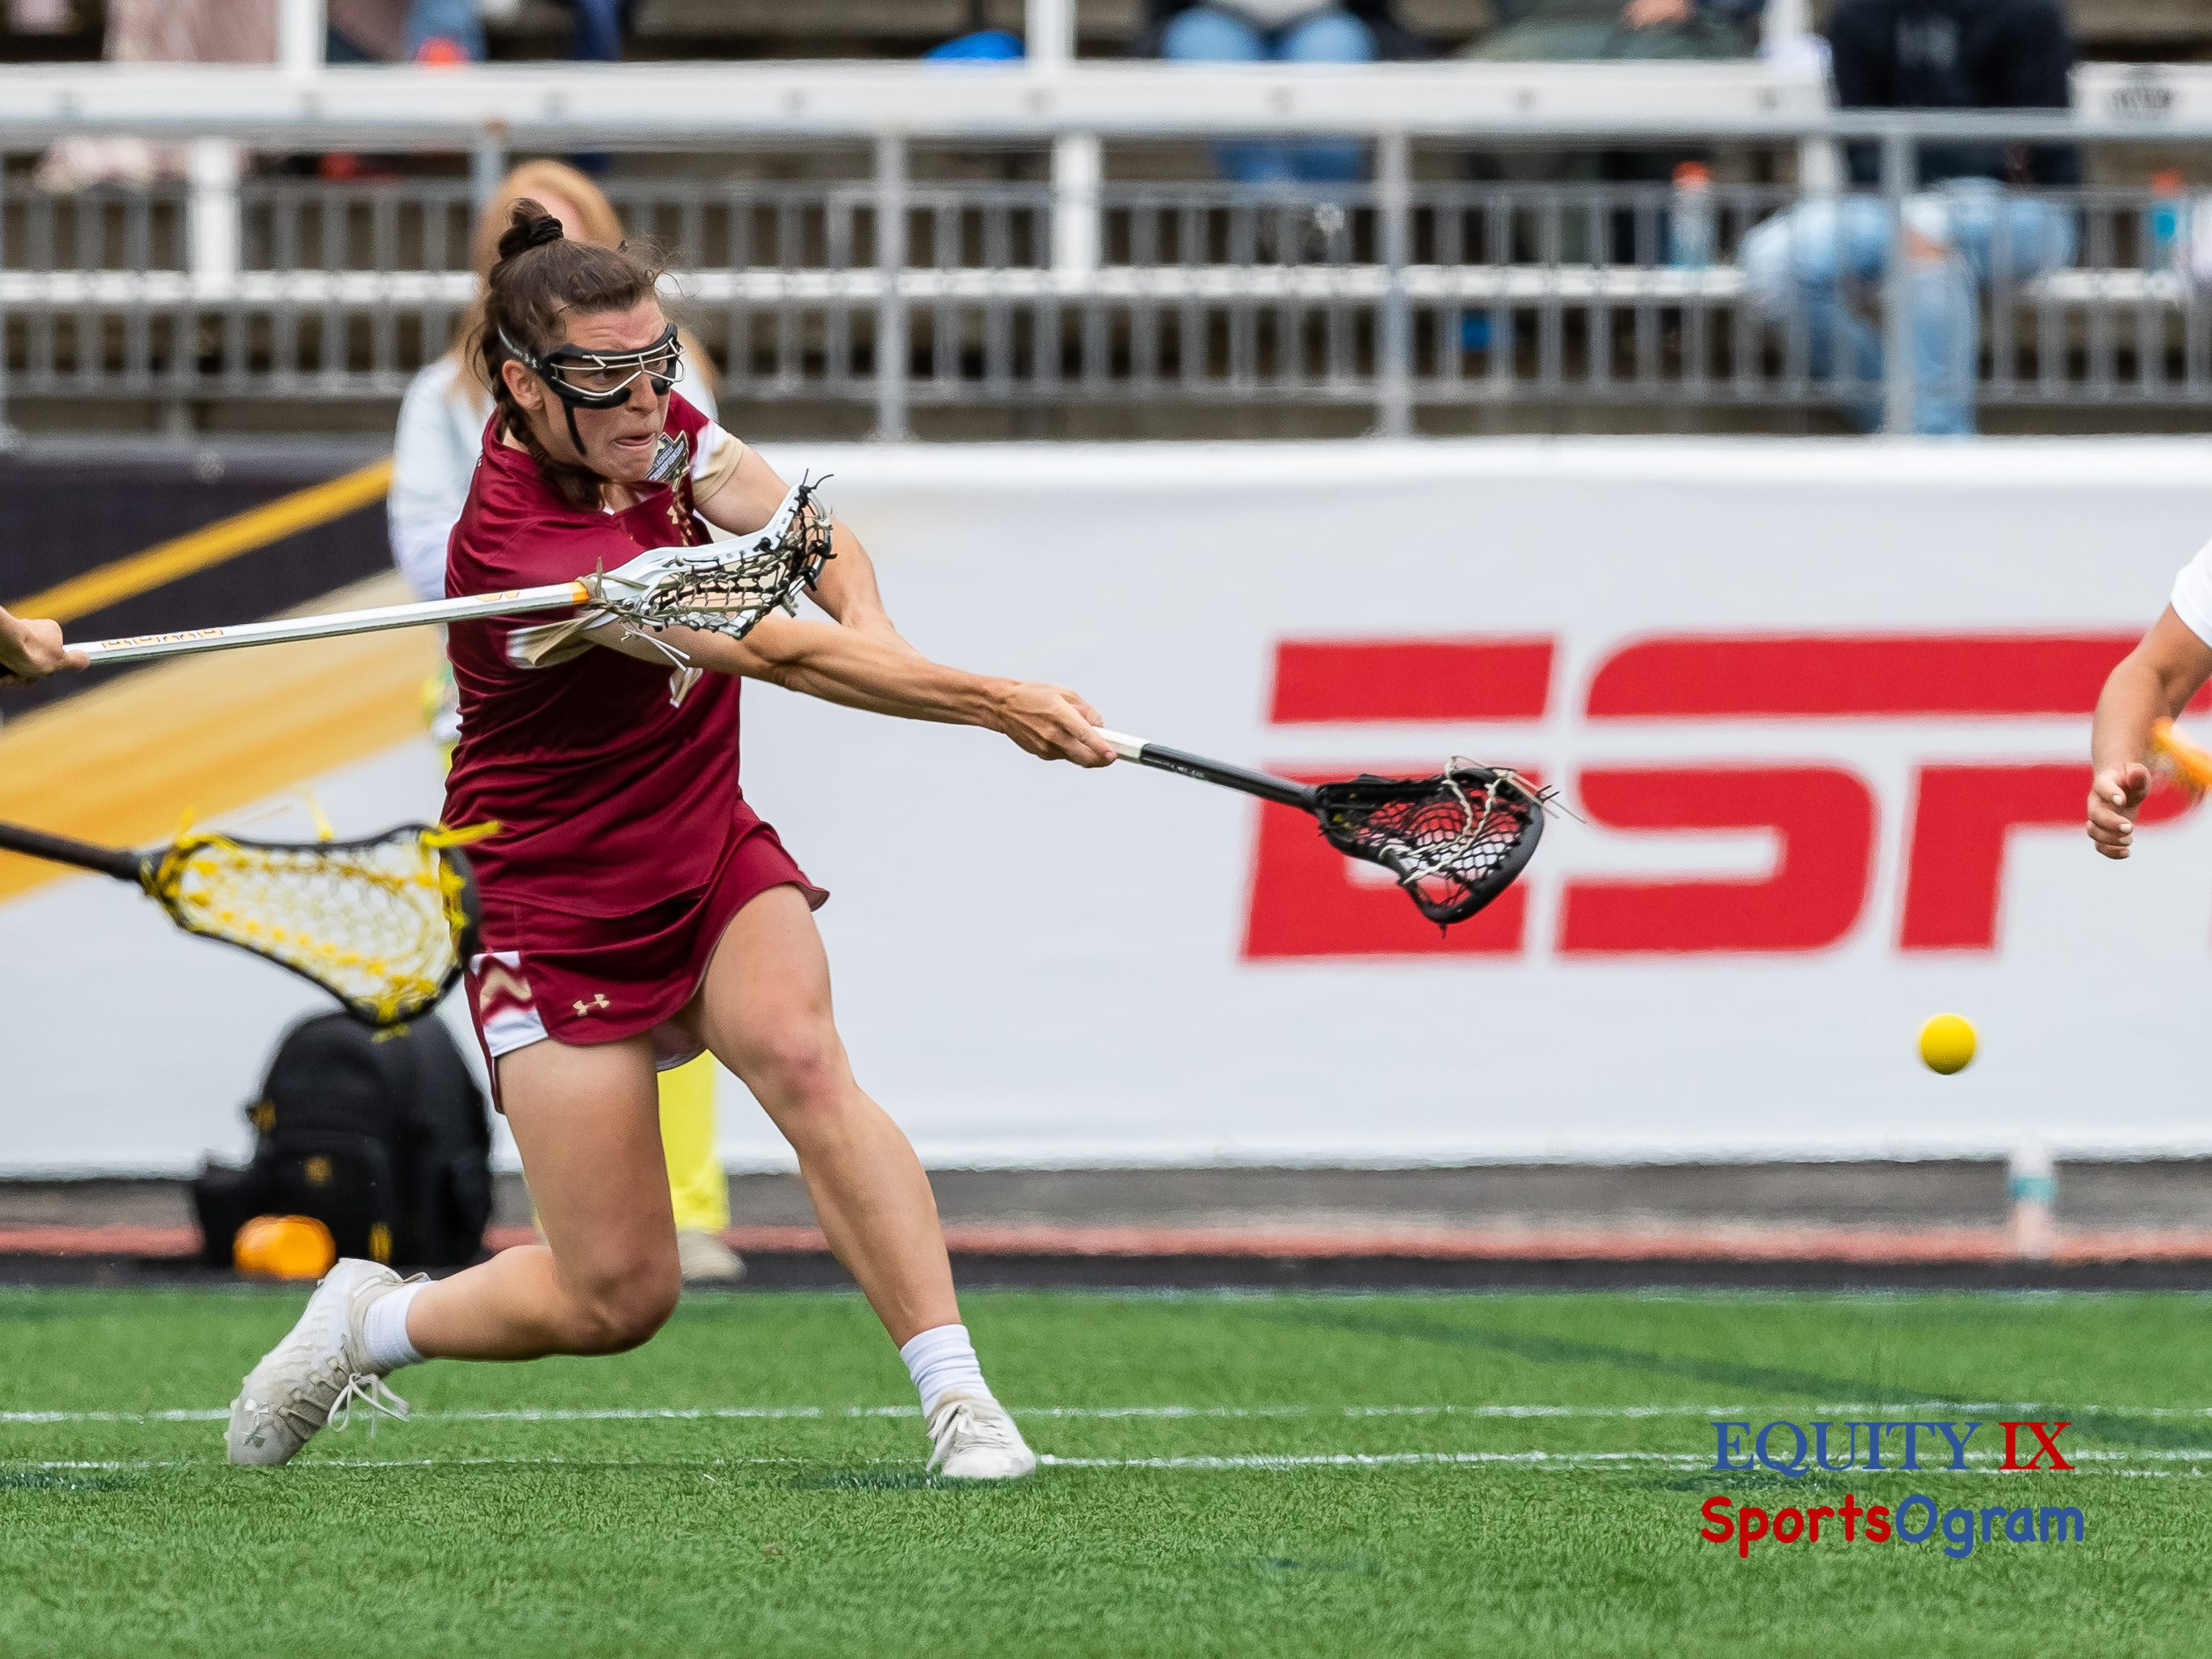 #8 Charlotte North (Boston College) shoots lacrosse ball by extending her black lacrosse stick right handed with muscles in arm and yellow ball firing out of the stick in the air - 2021 NCAA Women's Lacrosse Championship Game © Equity IX - SportsOgram - Leigh Ernst Friestedt